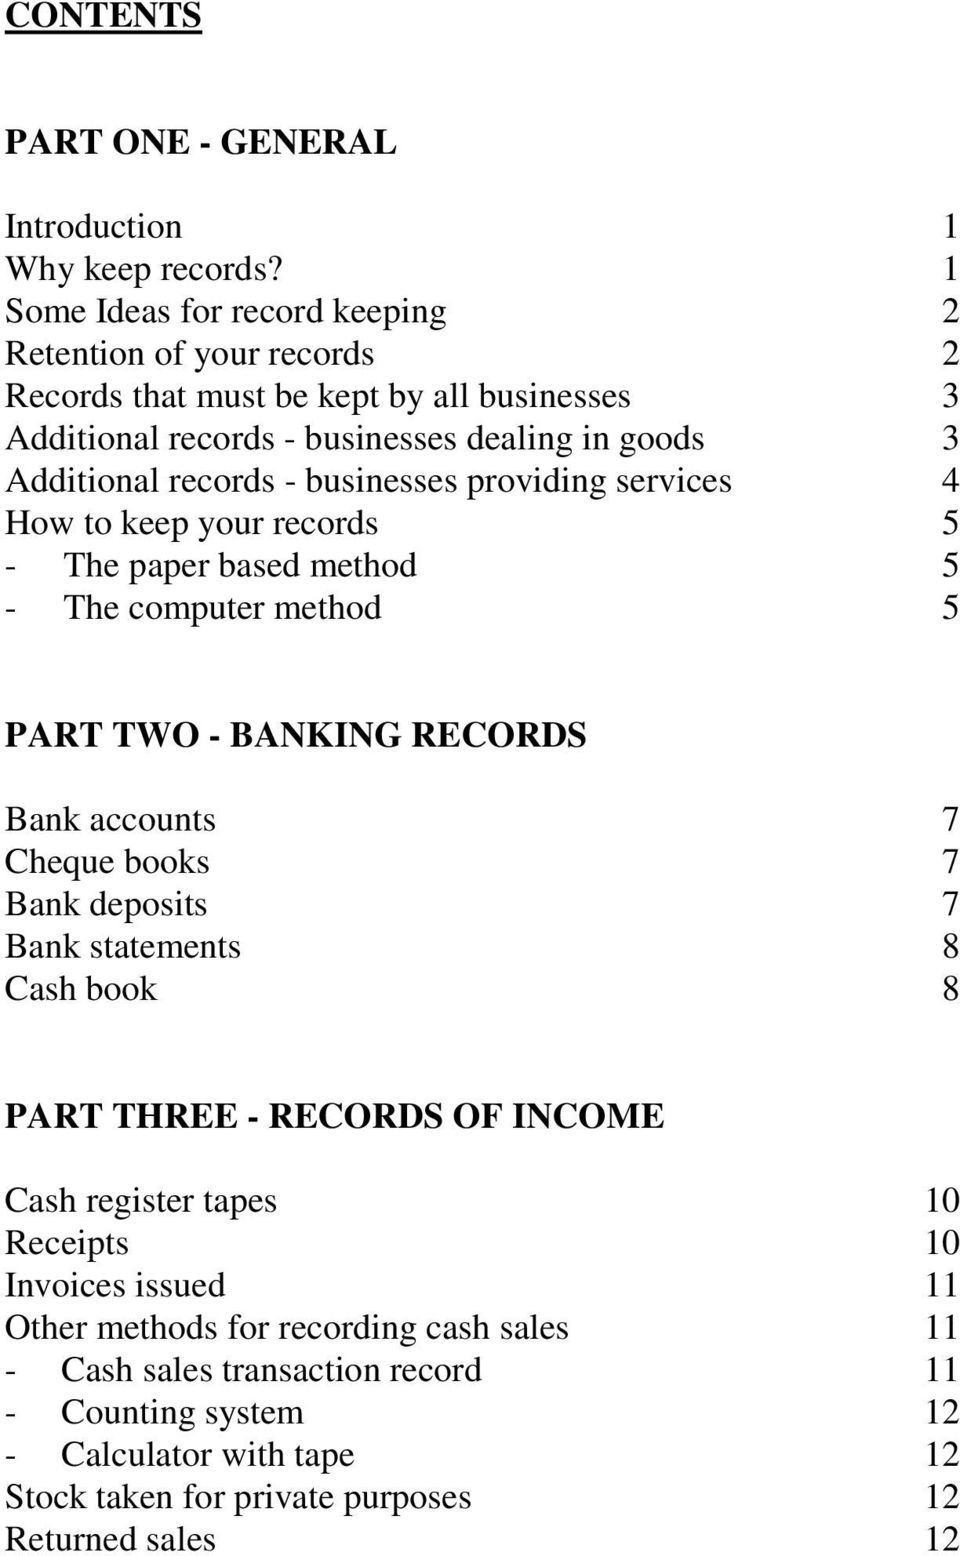 businesses providing services 4 How to keep your records 5 - The paper based method 5 - The computer method 5 PART TWO - BANKING RECORDS Bank accounts 7 Cheque books 7 Bank